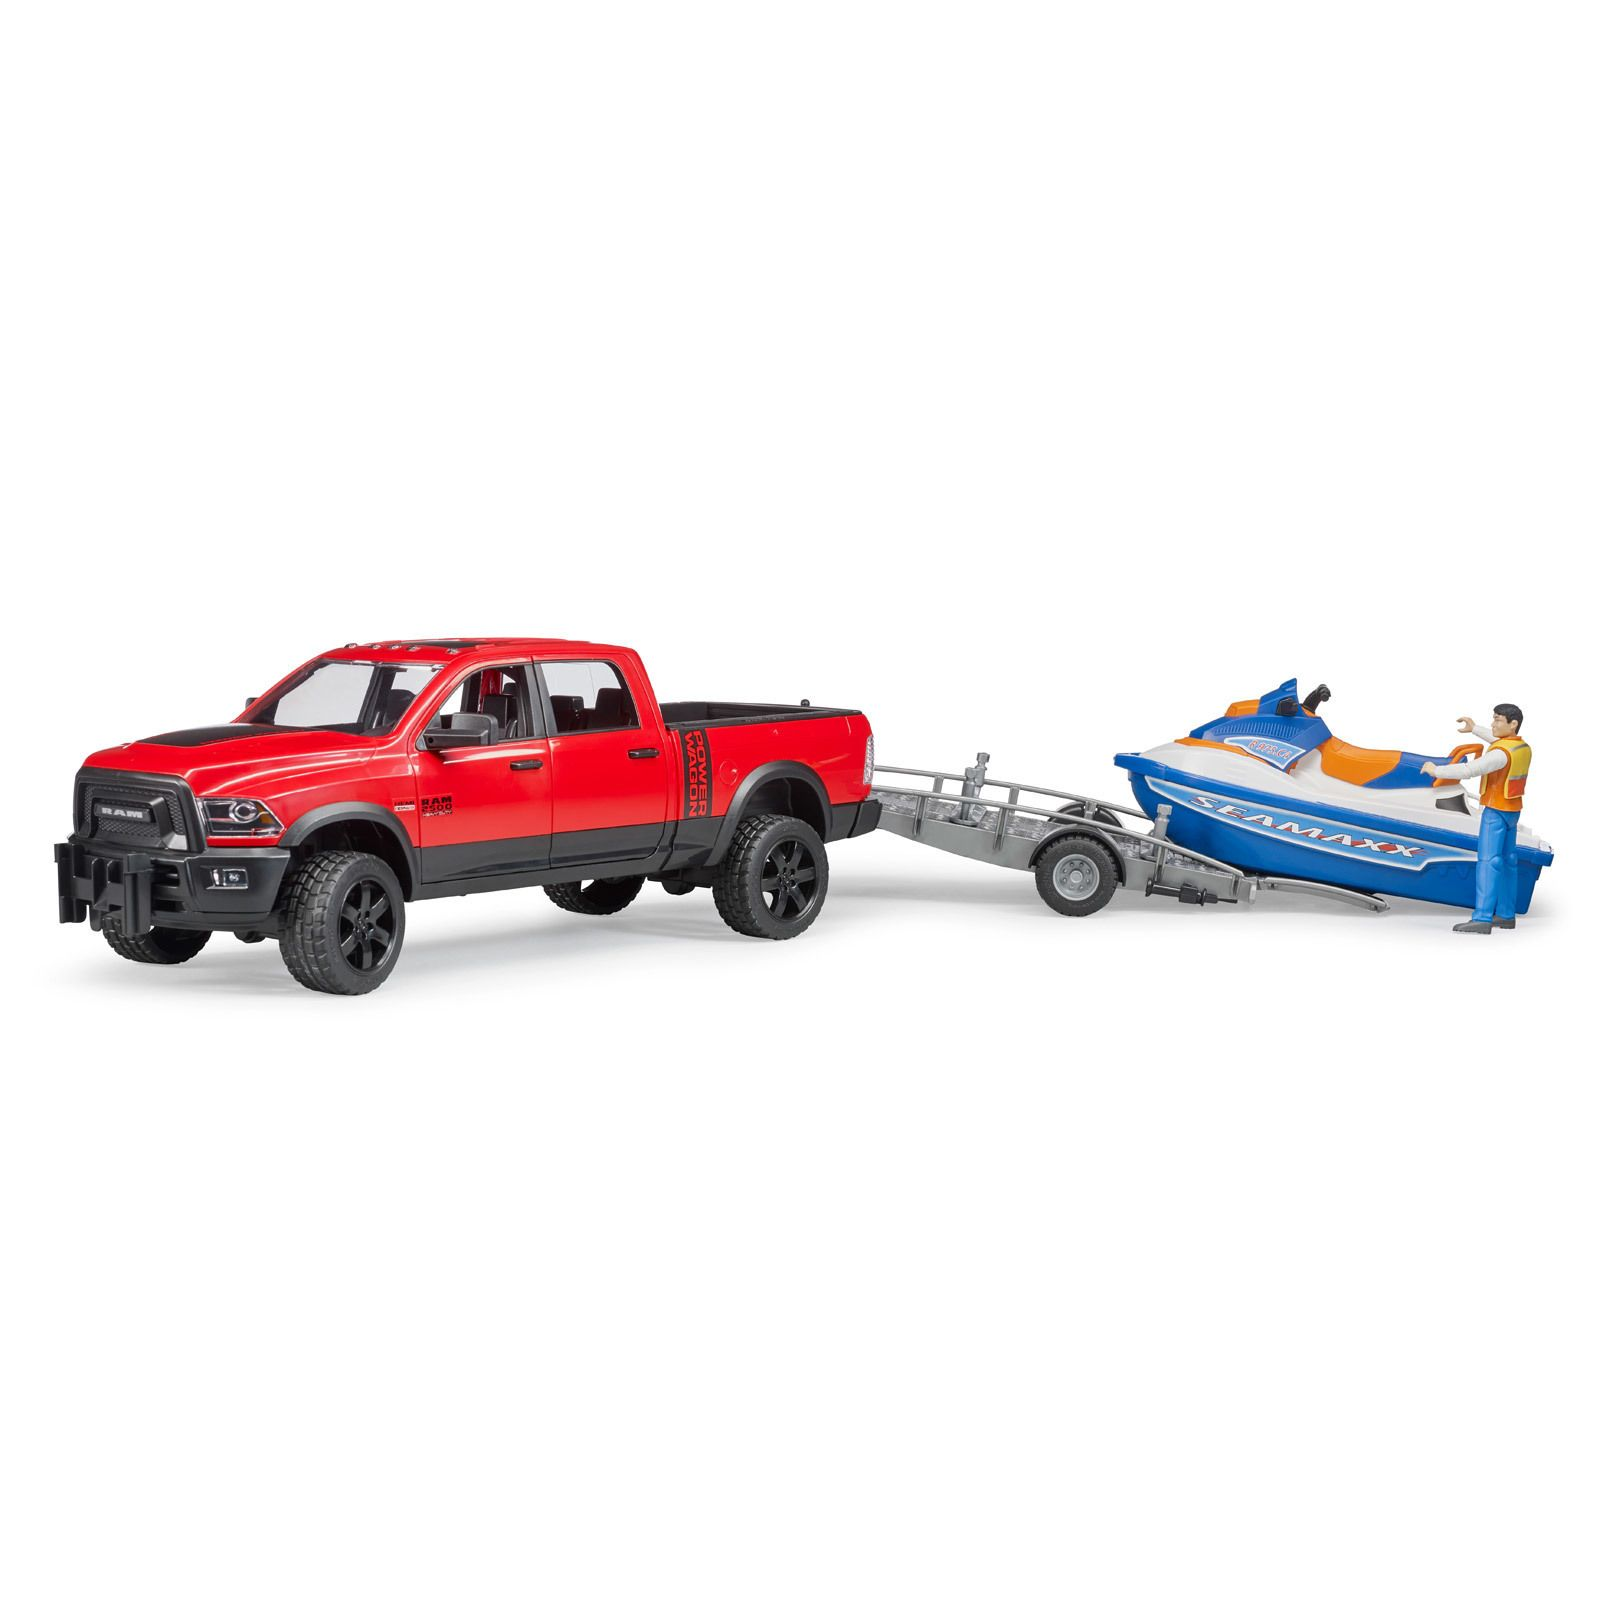 Bruder #02503 RAM 2500 Power Wagon with Trailer, Jet Ski, and Figure - New Factory Sealed #2503